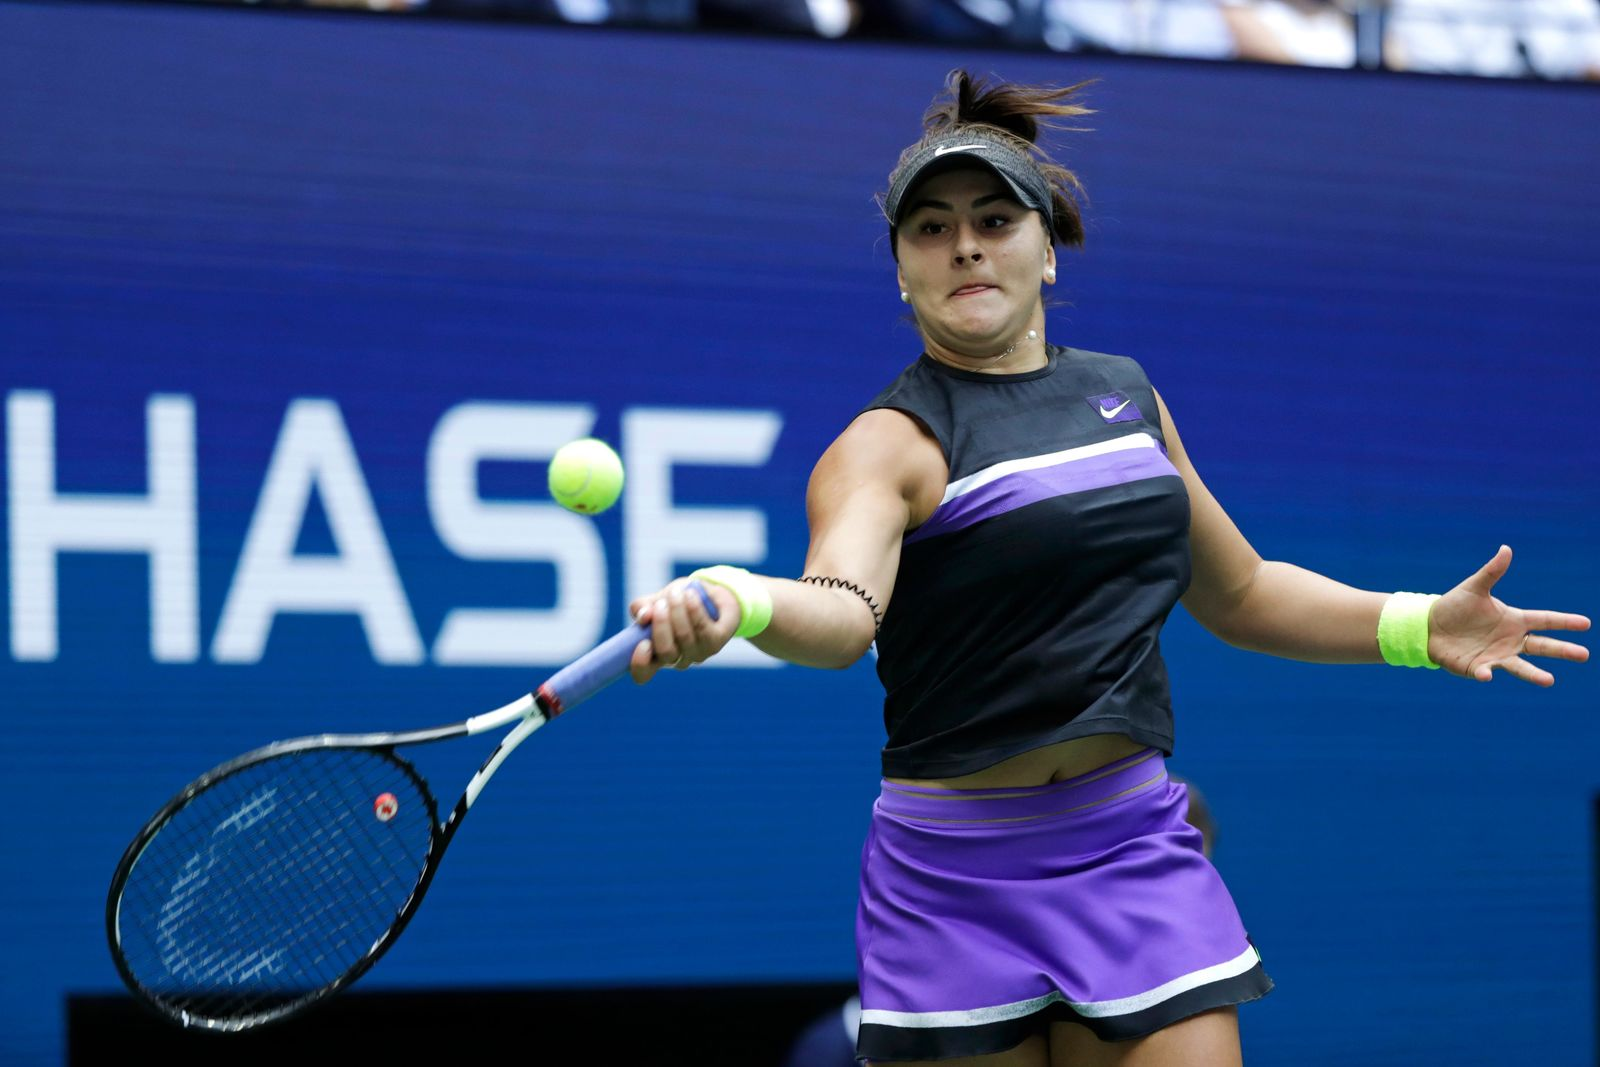 Bianca Andreescu, of Canada, returns a shot to Serena Williams, of the United States, during the women's singles final of the U.S. Open tennis championships Saturday, Sept. 7, 2019, in New York. (AP Photo/Adam Hunger)